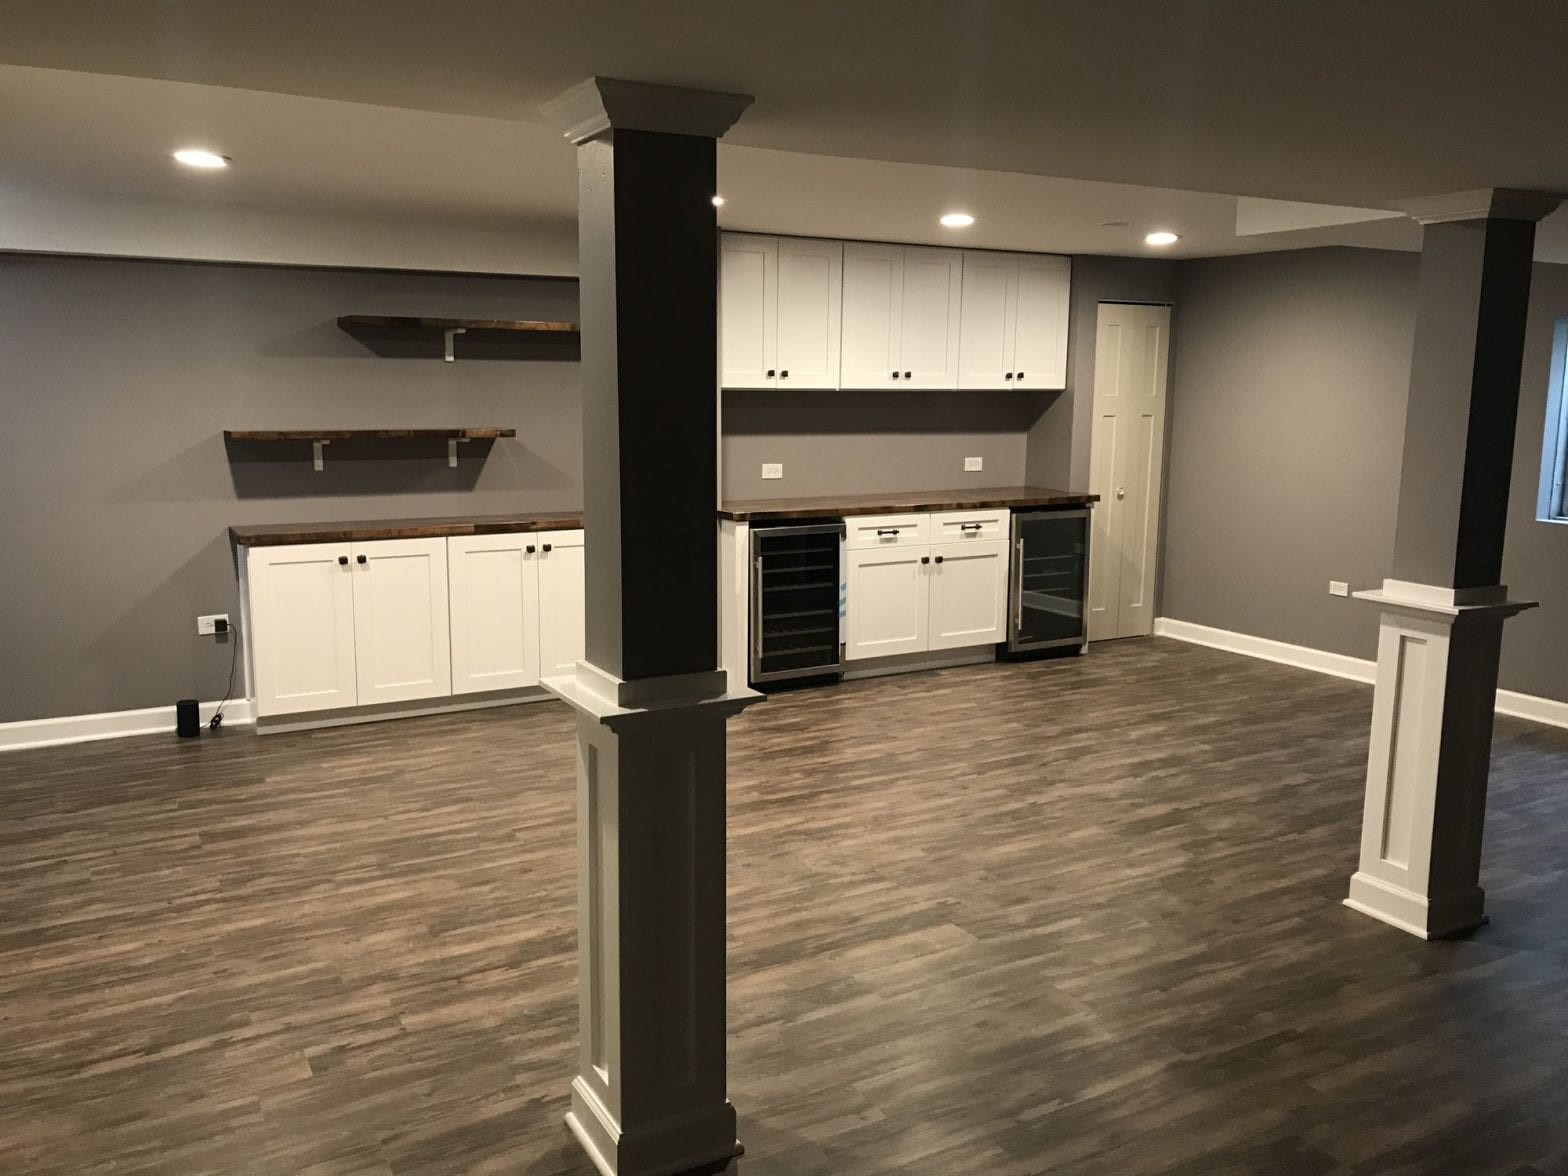 Basement remodeling in Streamwood - new flooring, cabinets, fixtures